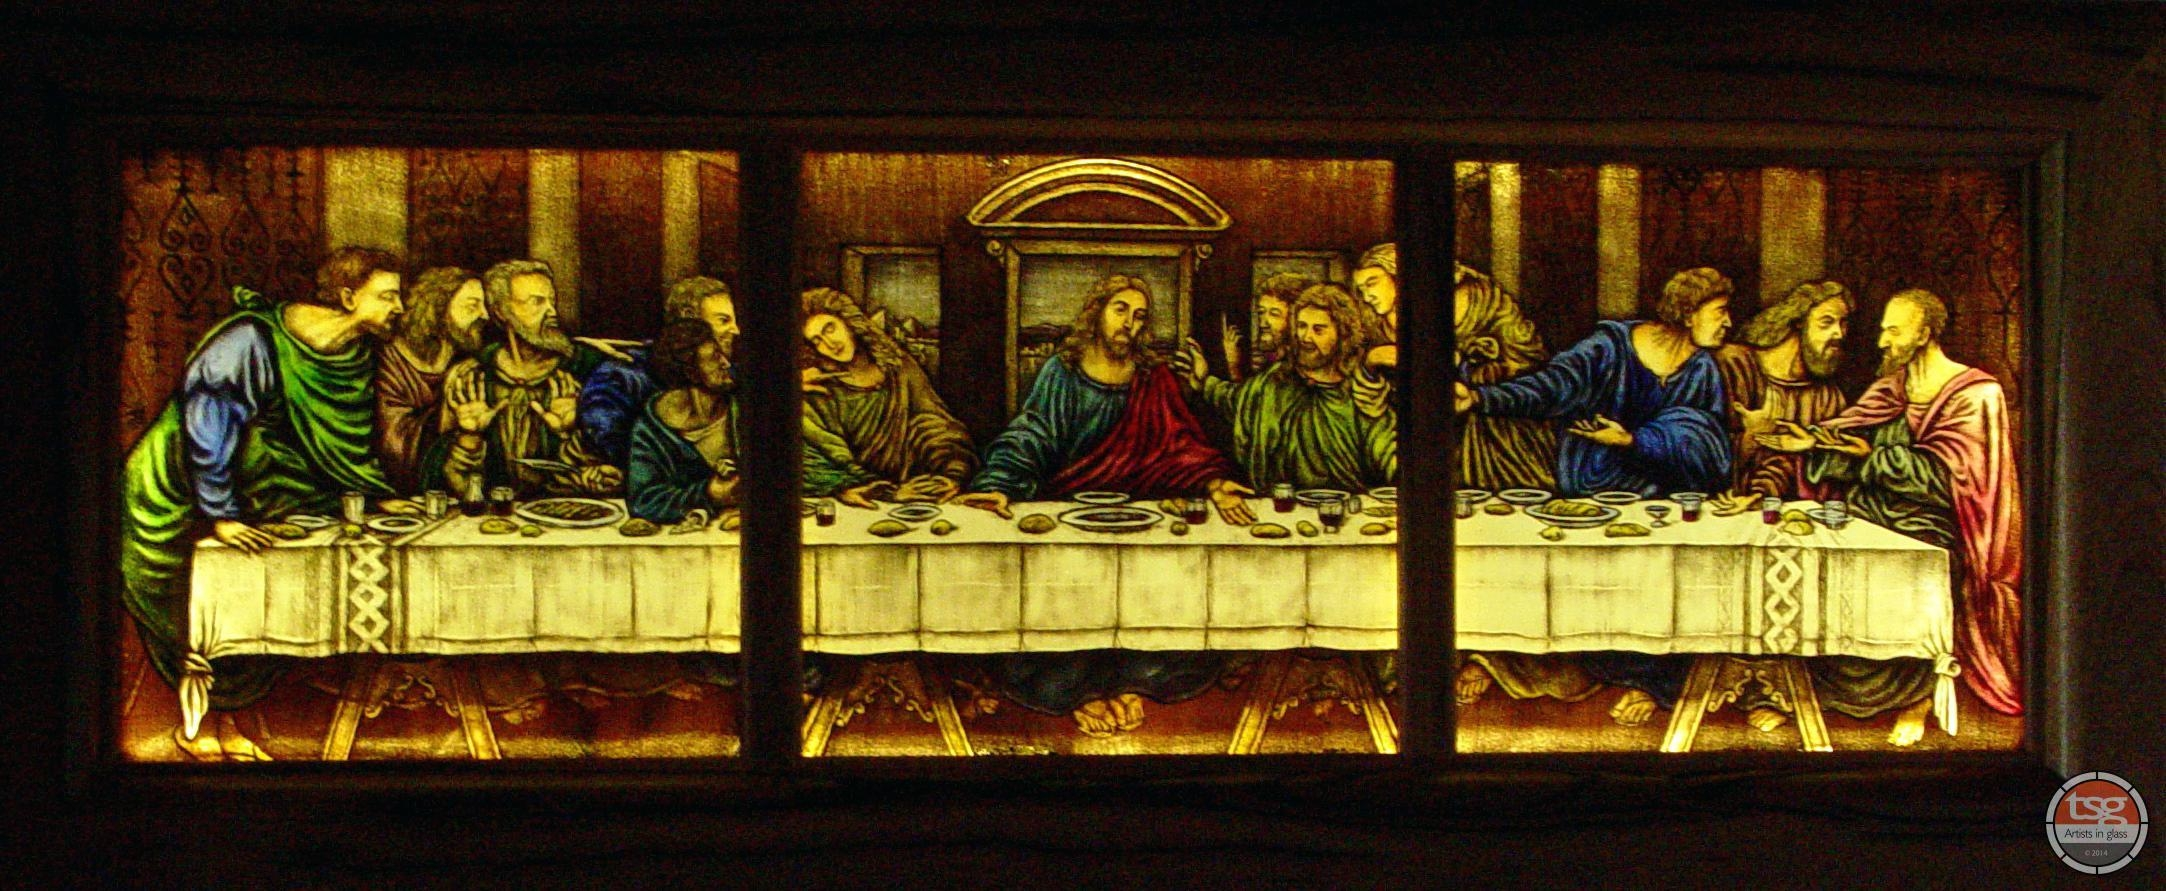 Articles With Kajaria Kitchen Wall Tiles Design Tag: Kitchen Wall In Last Supper Wall Art (View 9 of 20)